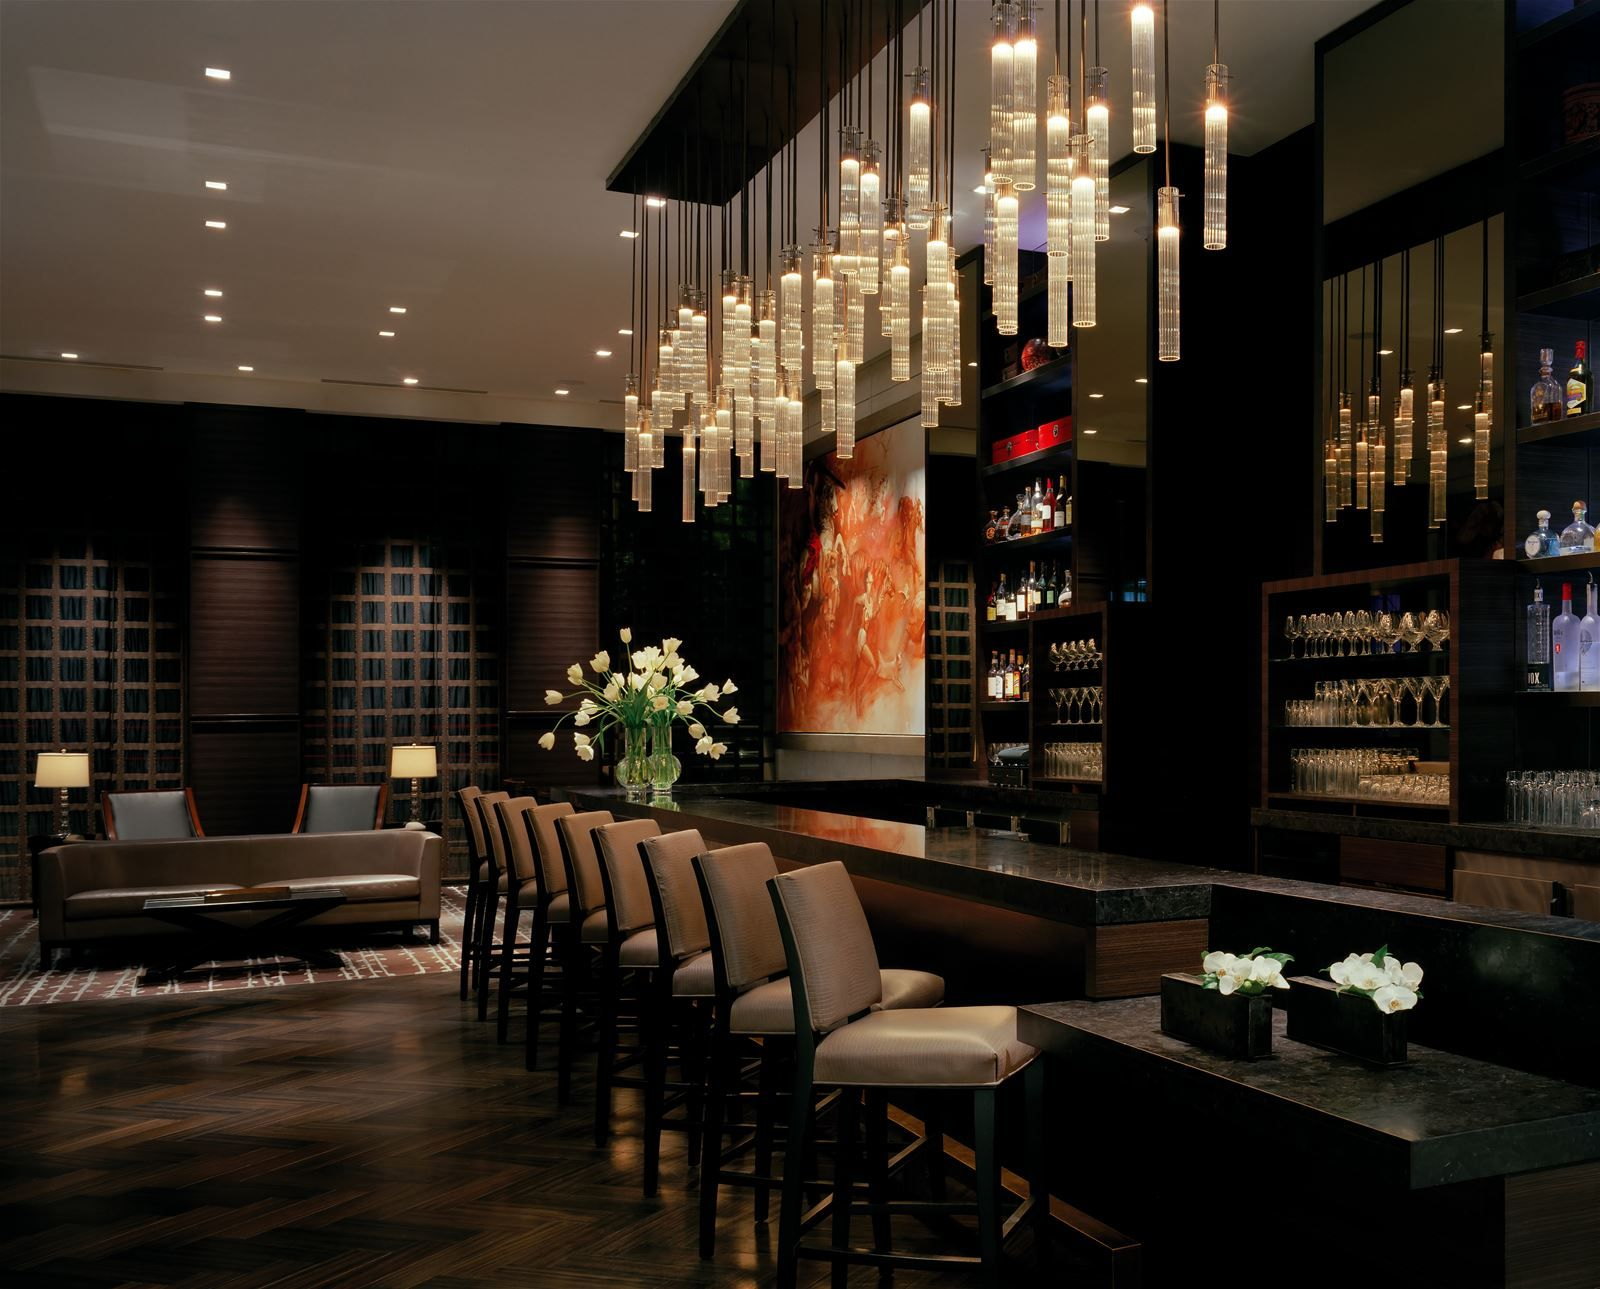 St regis hotel san francisco united states of america Restaurant lighting ideas